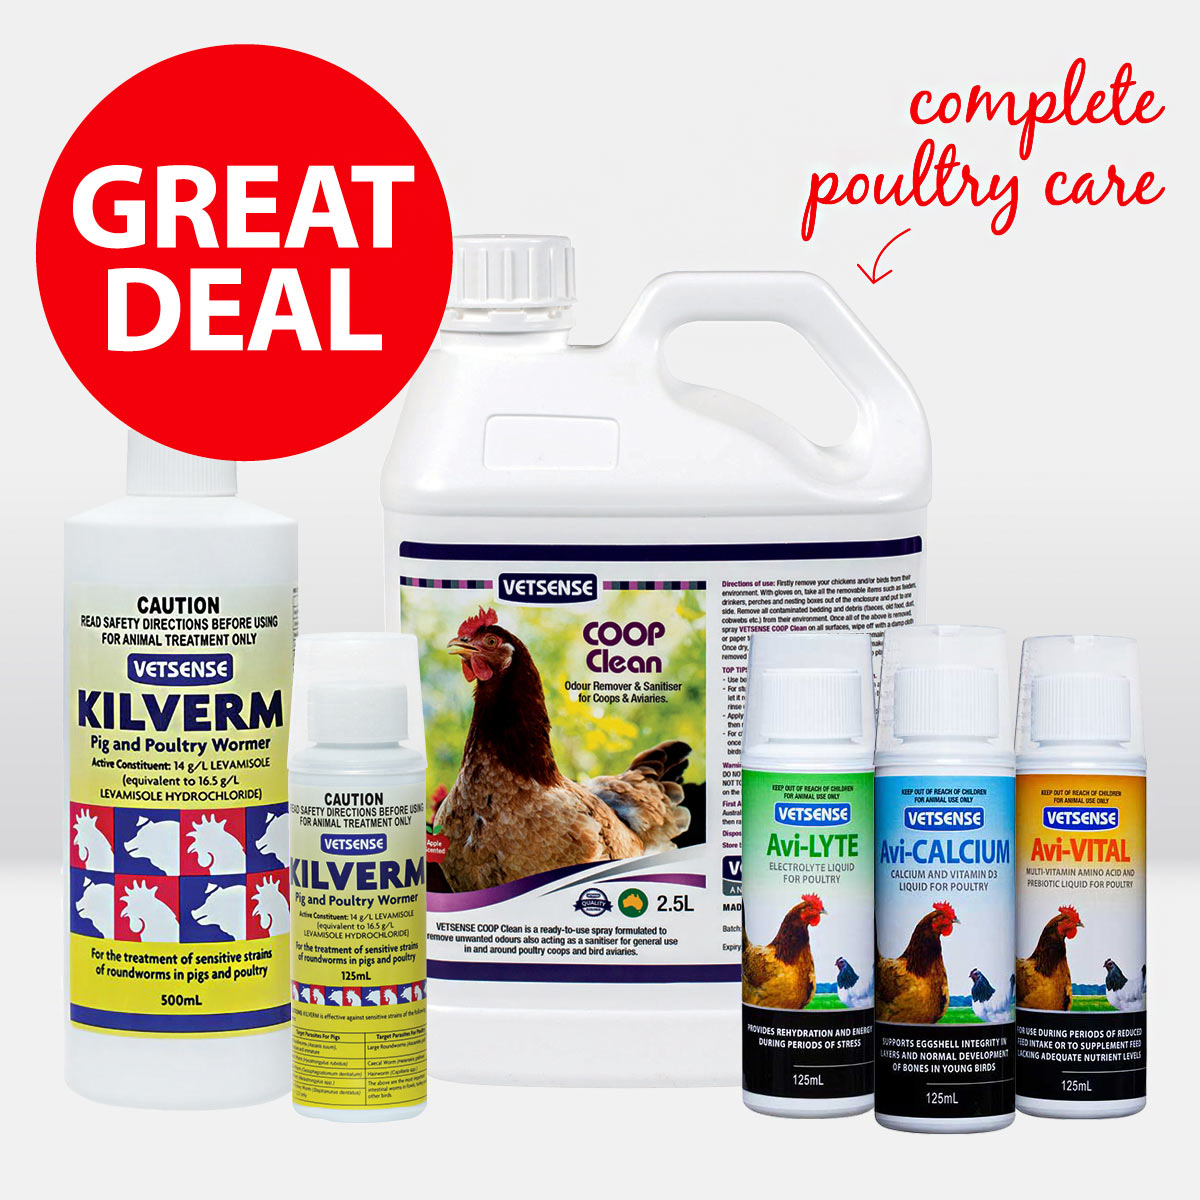 Vetsense Poultry Care ON SALE